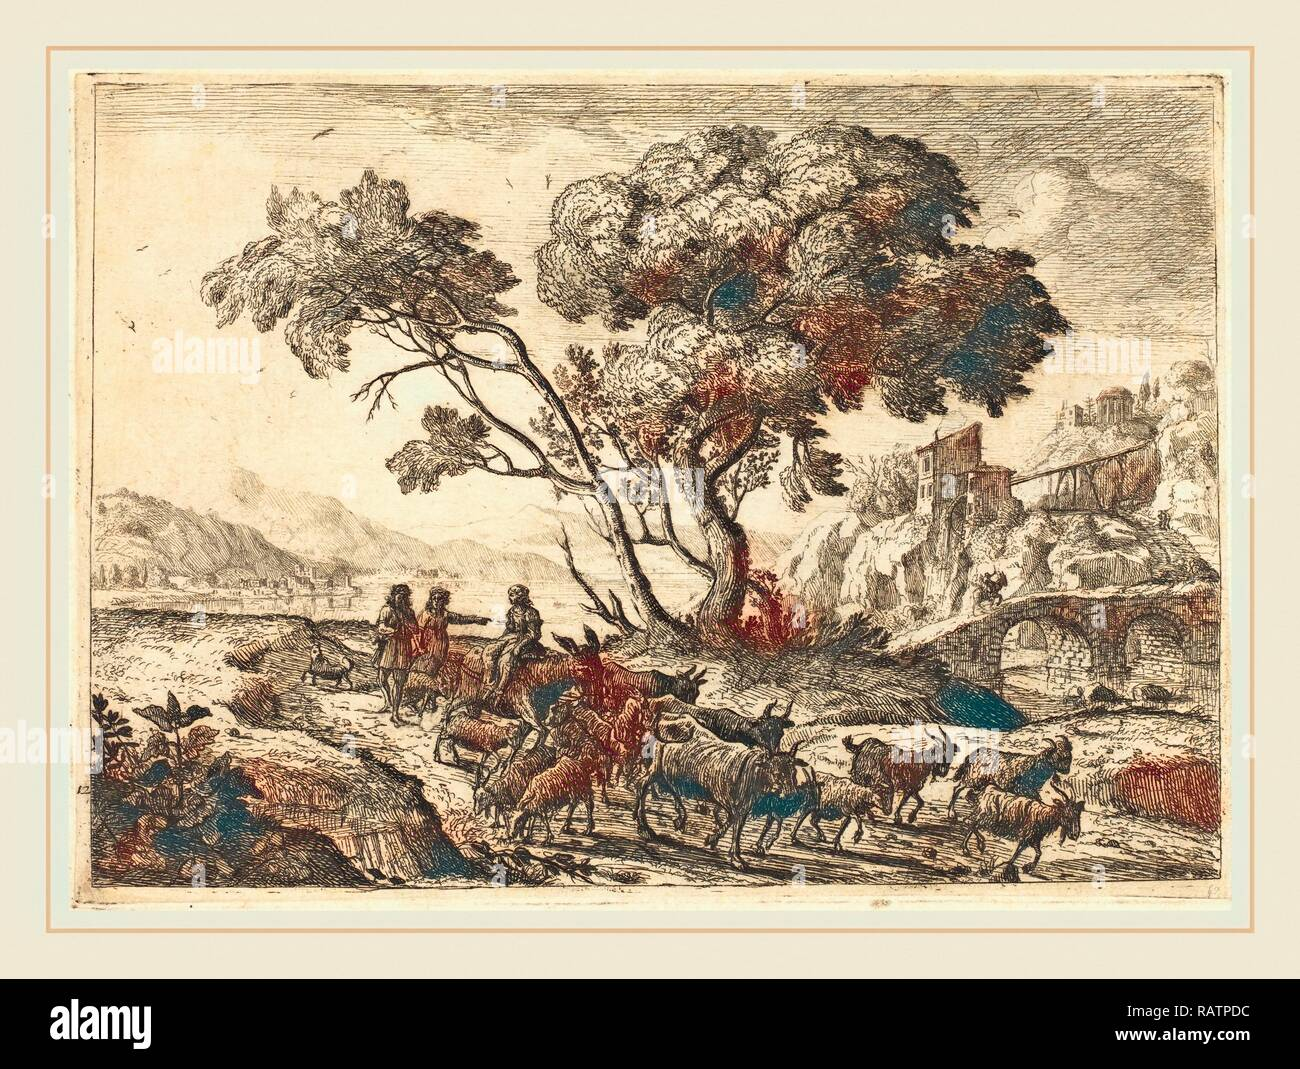 Claude Lorrain, French (1604-1605-1682), Departure for the Fields, 1638-1641, etching in black on laid paper reimagined - Stock Image